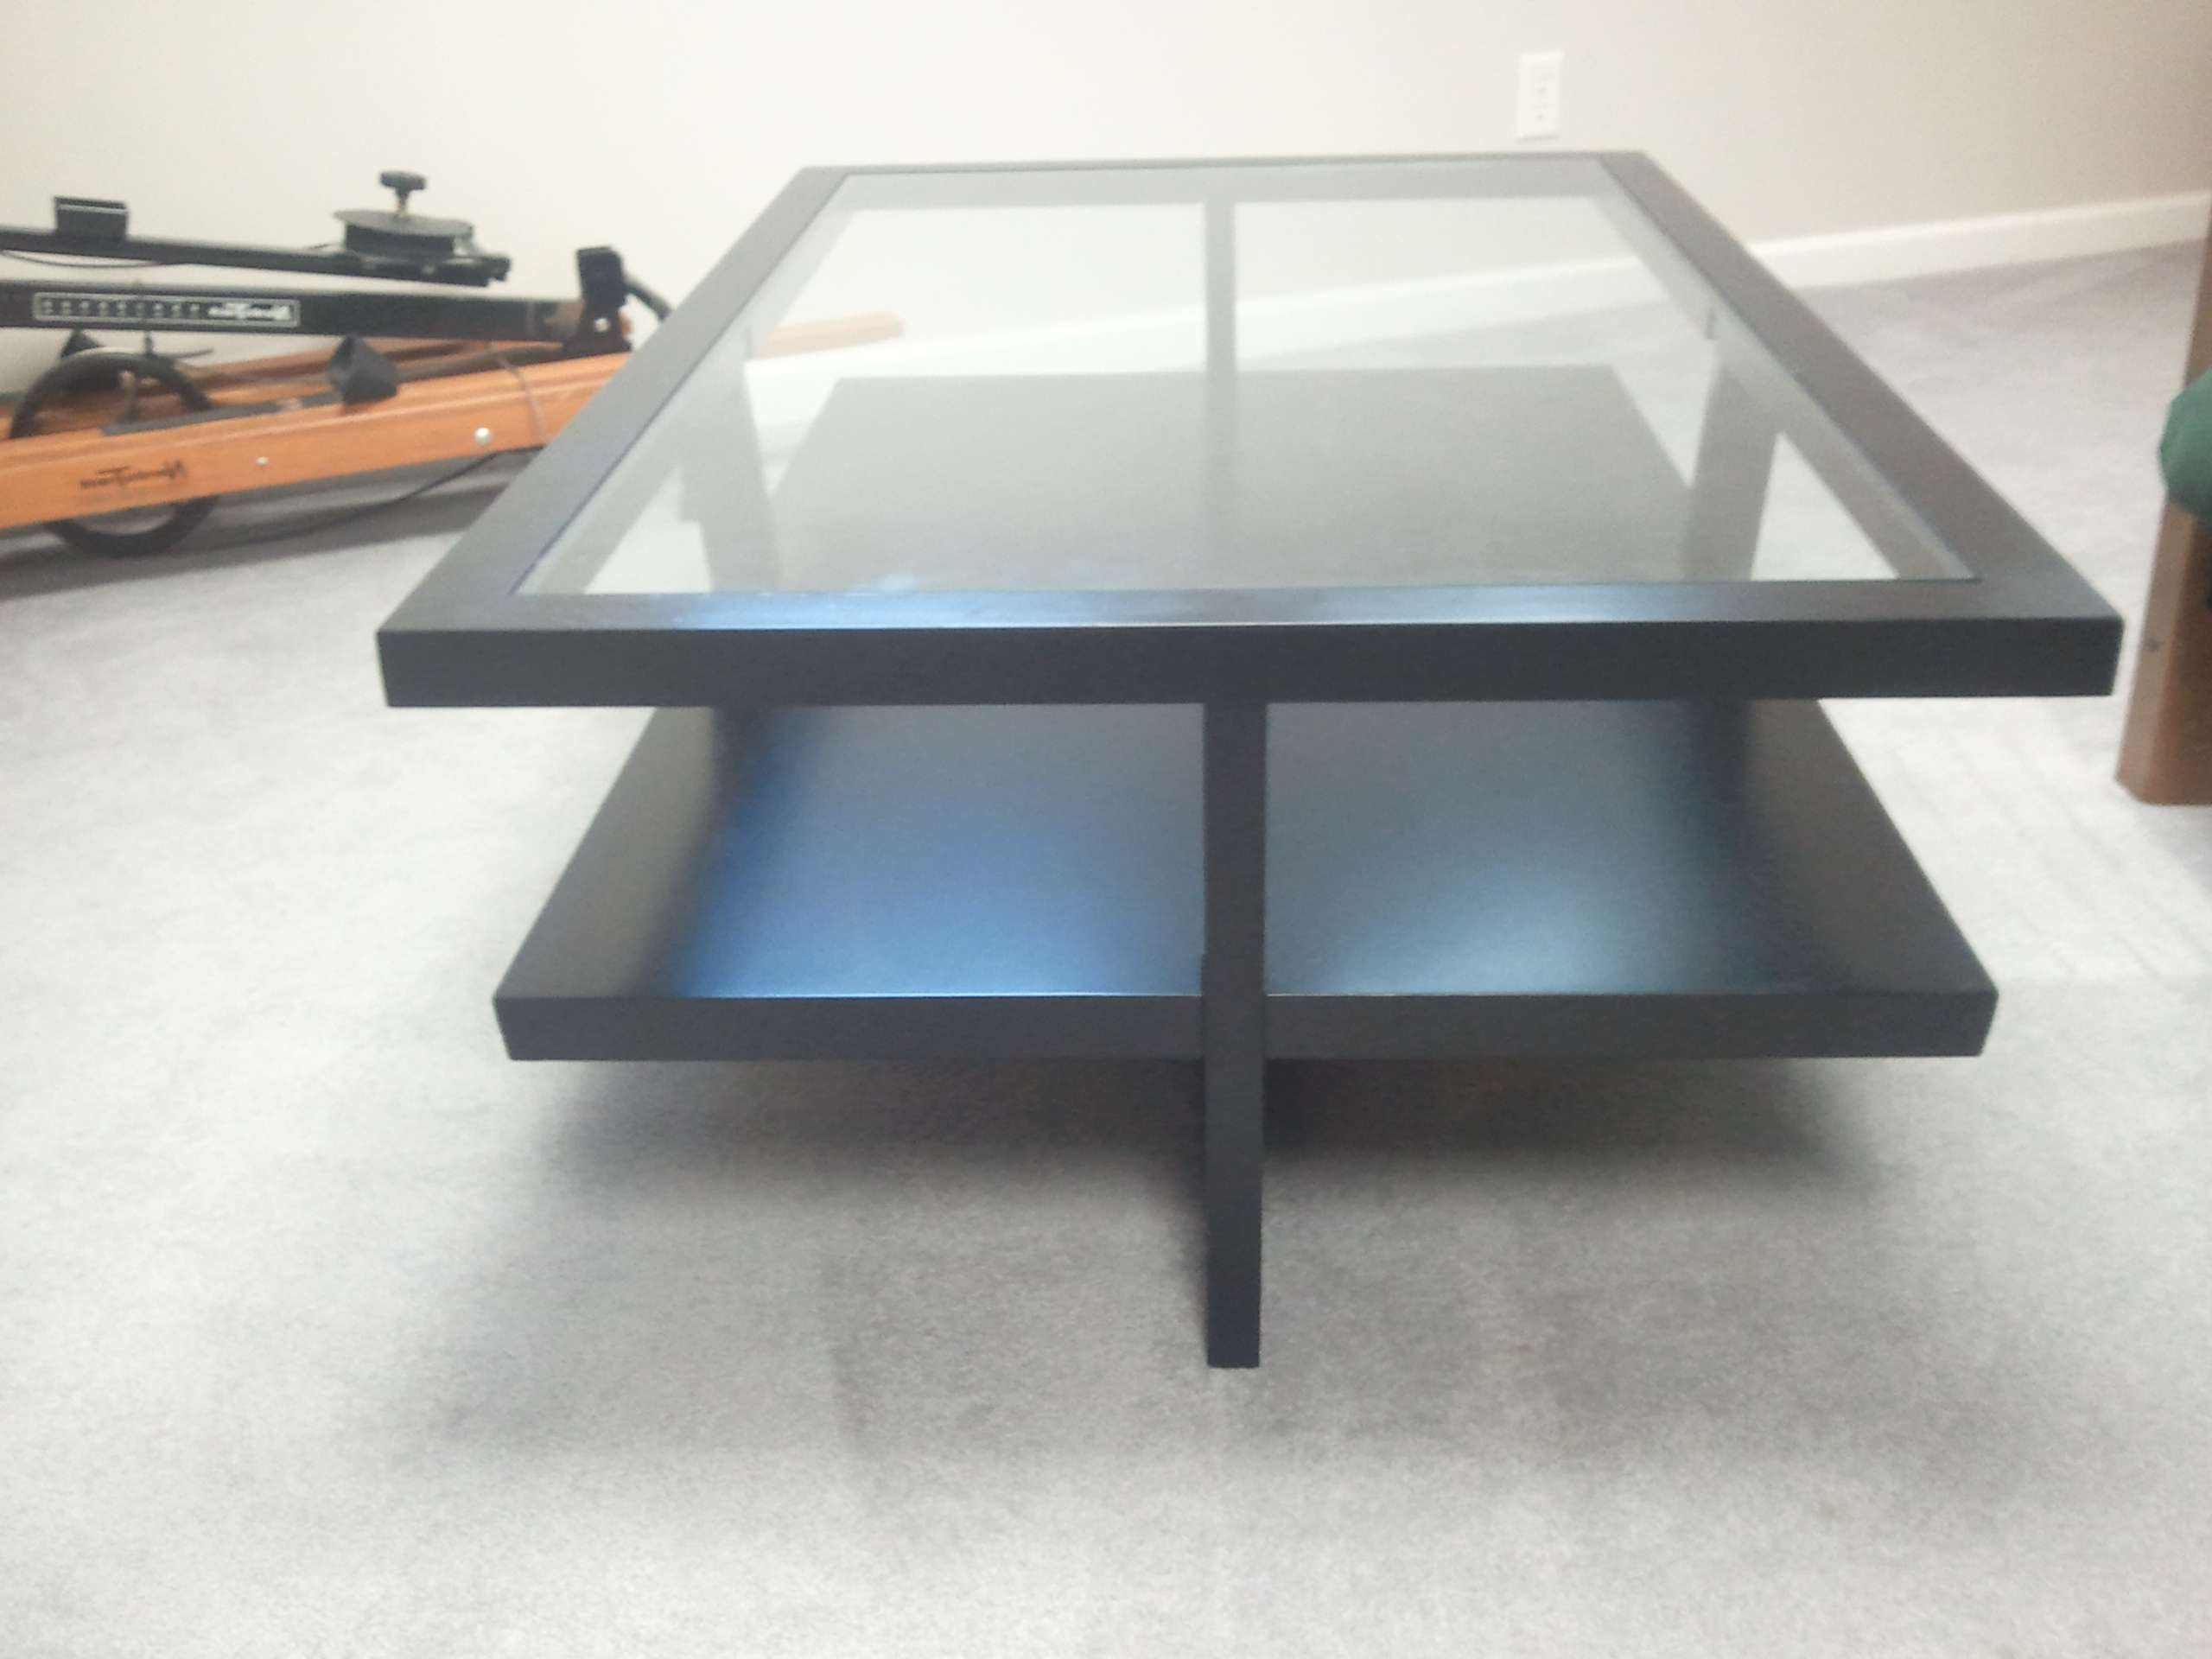 Contemporary Coffee Table Glass – Unique Shaped Coffee Table For Trendy Contemporary Coffee Table (View 14 of 20)